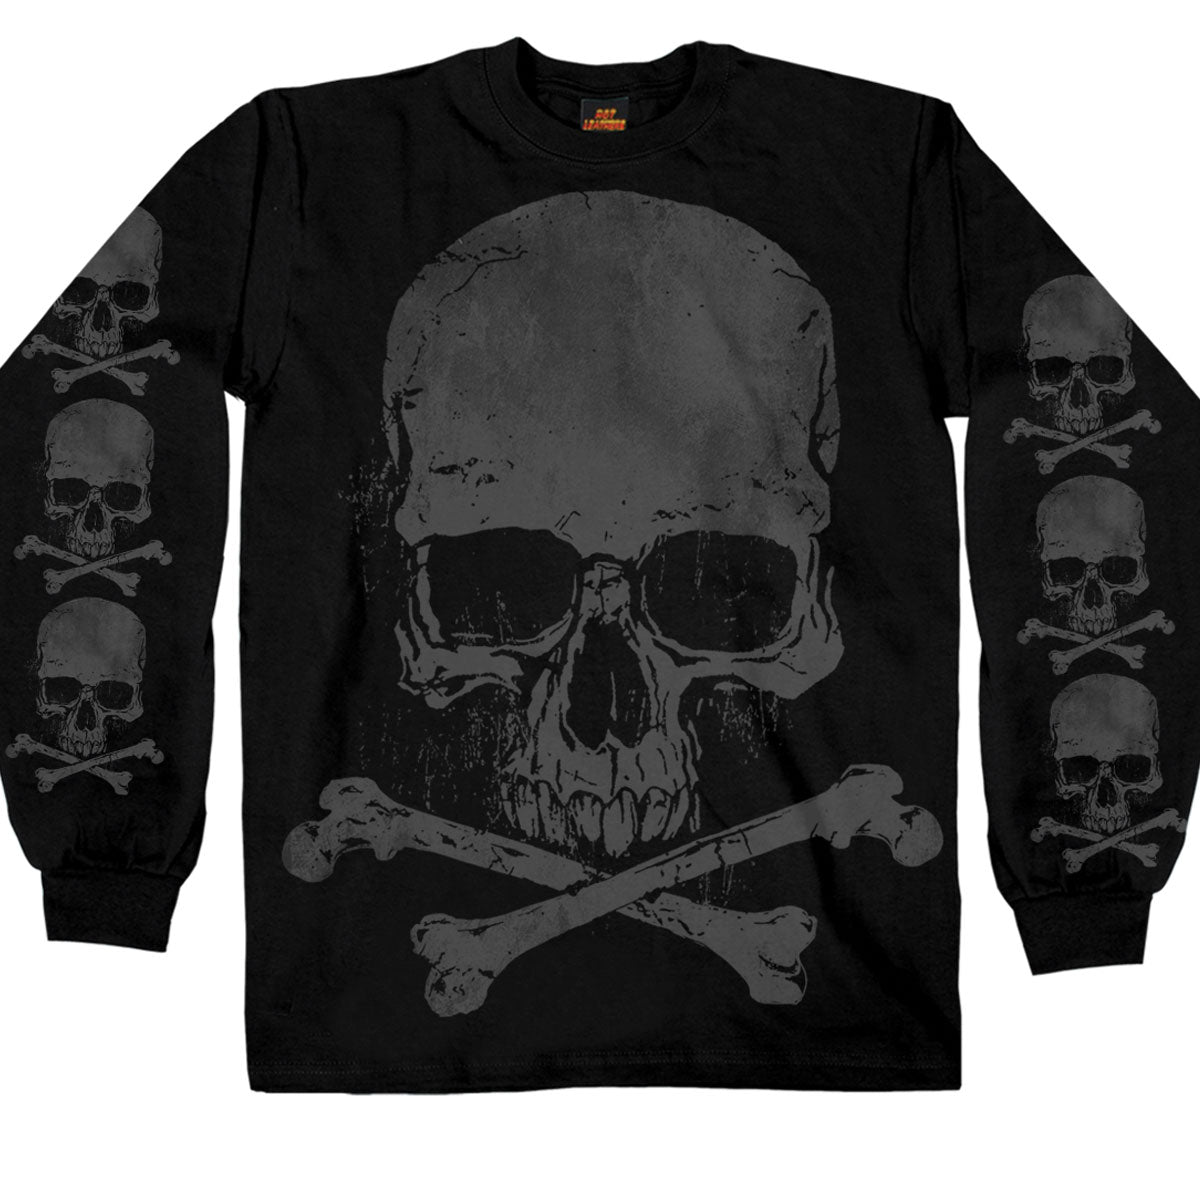 Hot Leathers Jumbo Print Skull and Cross Bones Long Sleeve Shirt